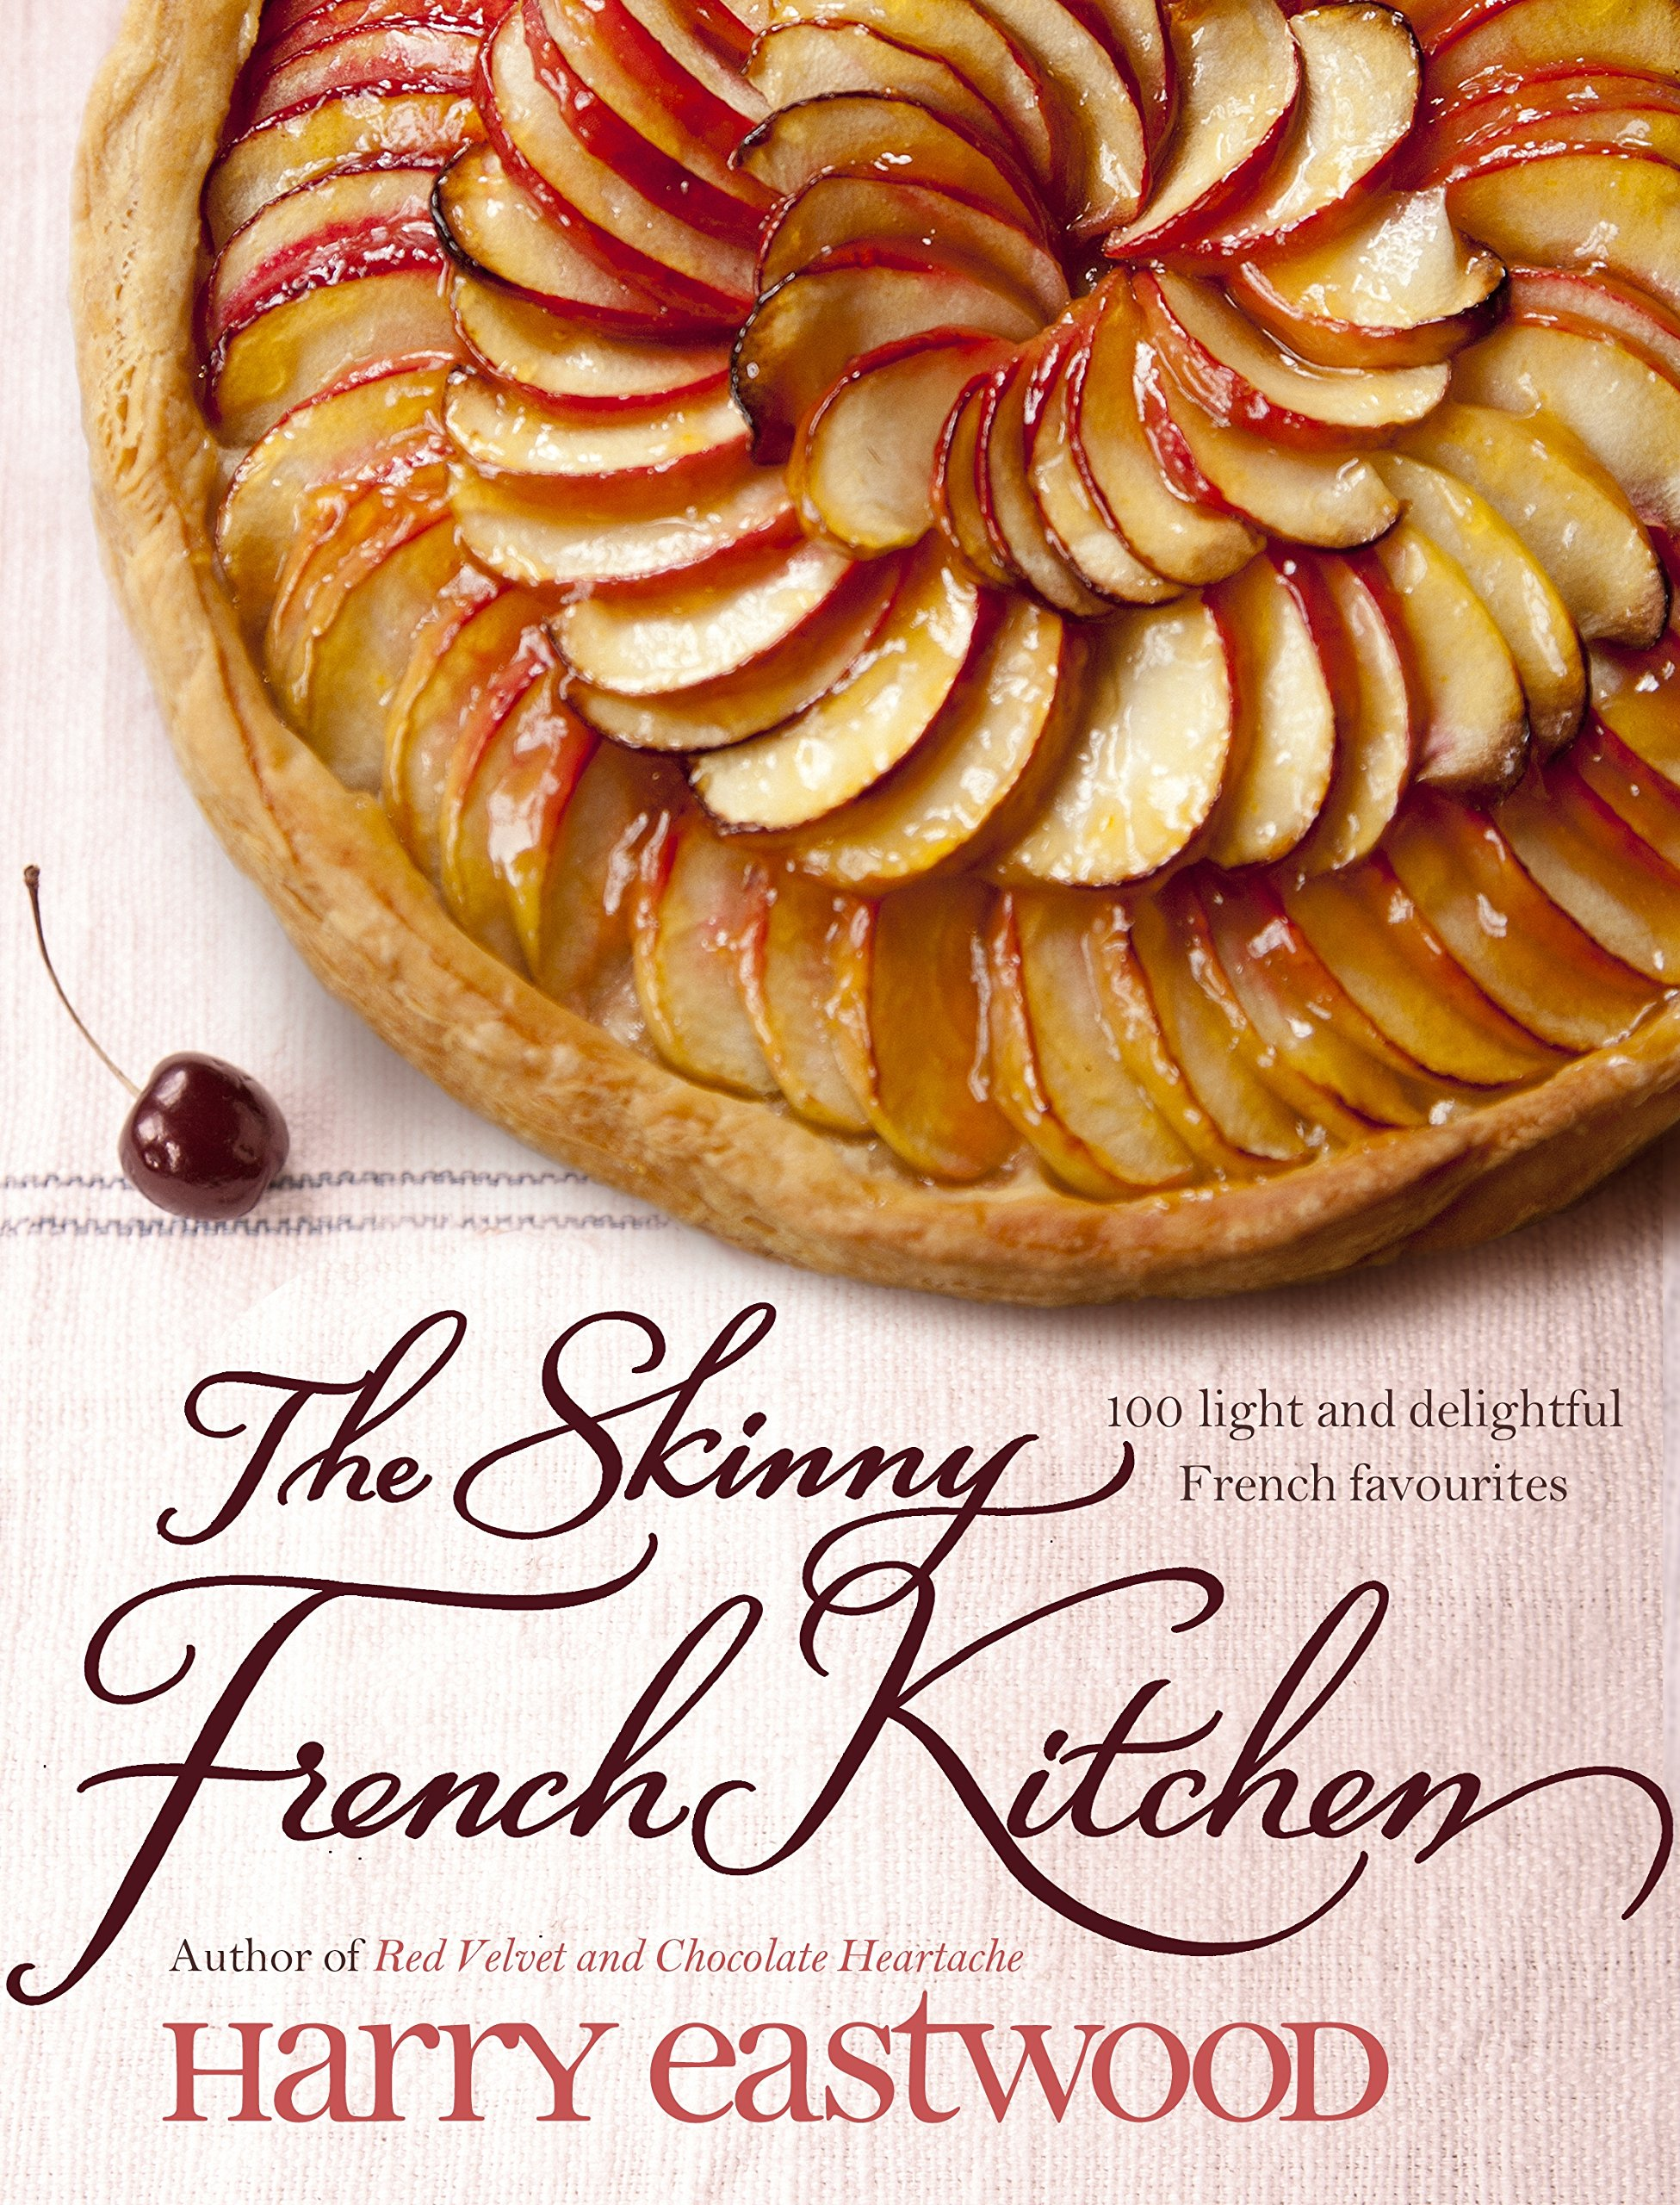 Image OfThe Skinny French Kitchen